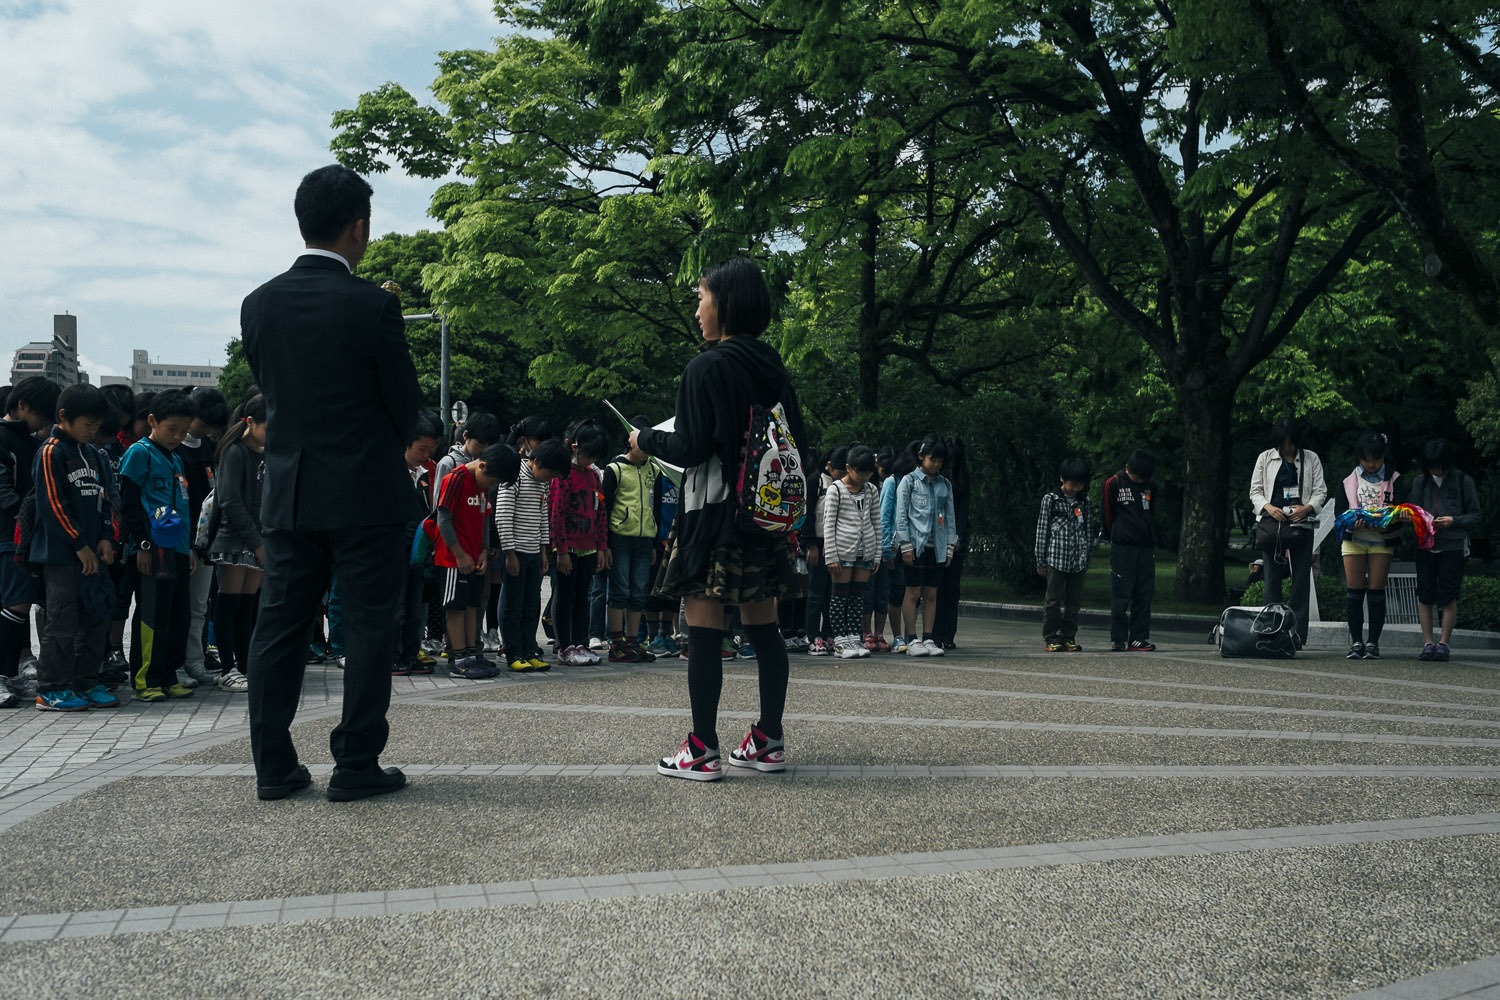 A class of Japanese children bowing before the Children's Peace Monument in Hiroshima.